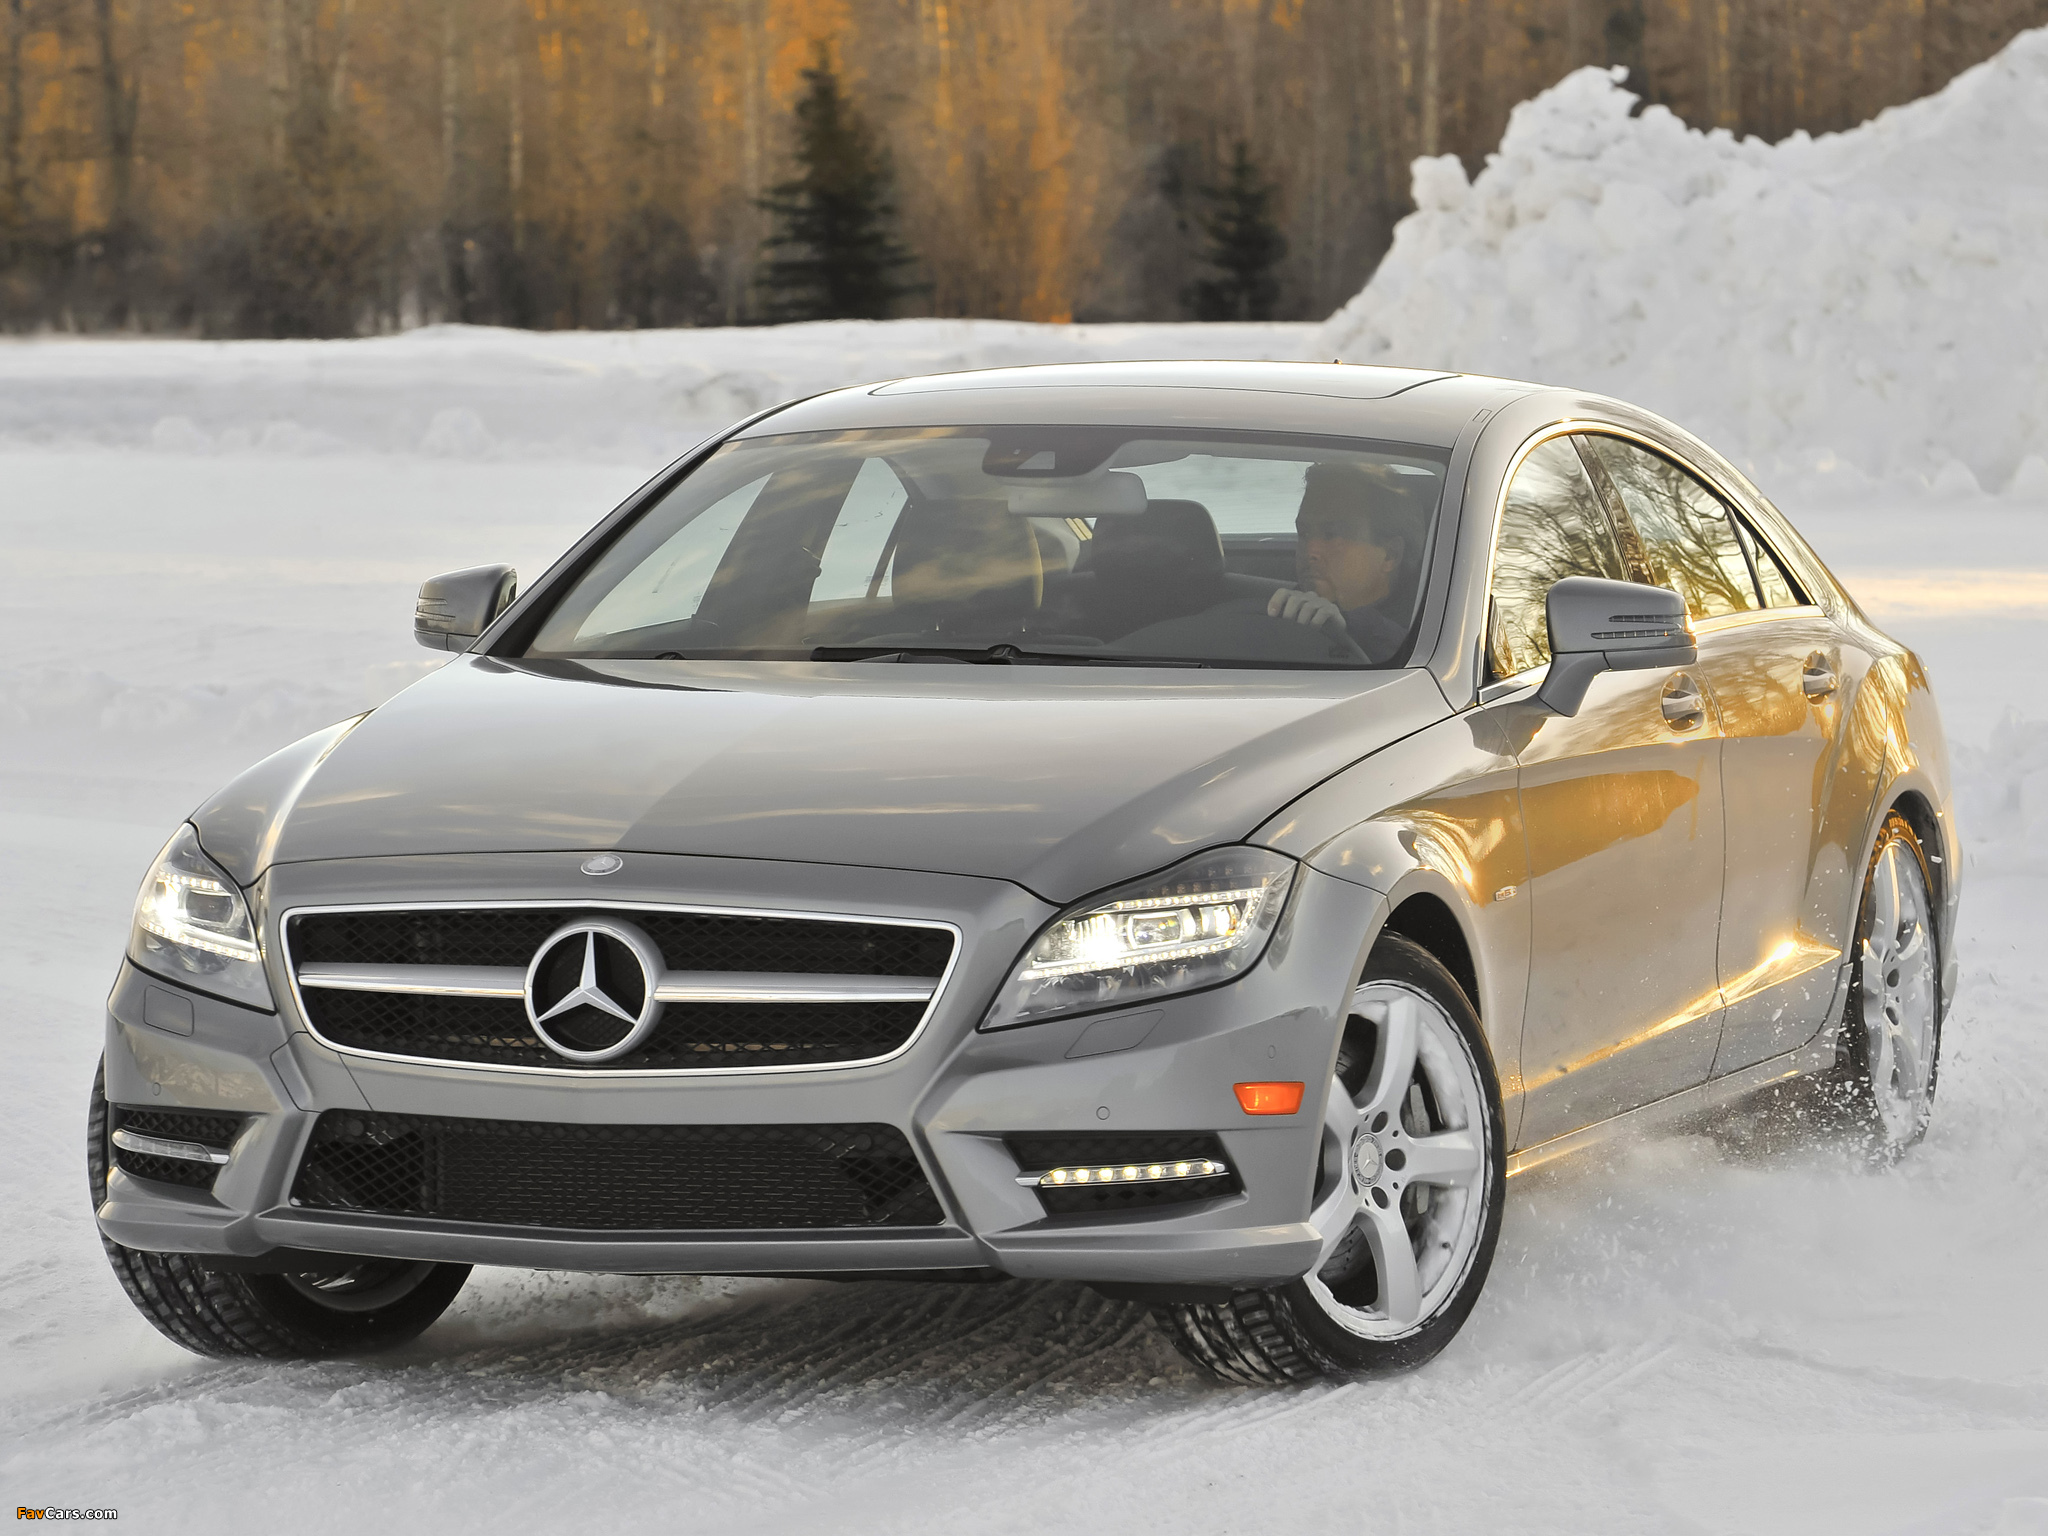 Pictures Of Mercedes Benz Cls 550 4matic Amg Sports